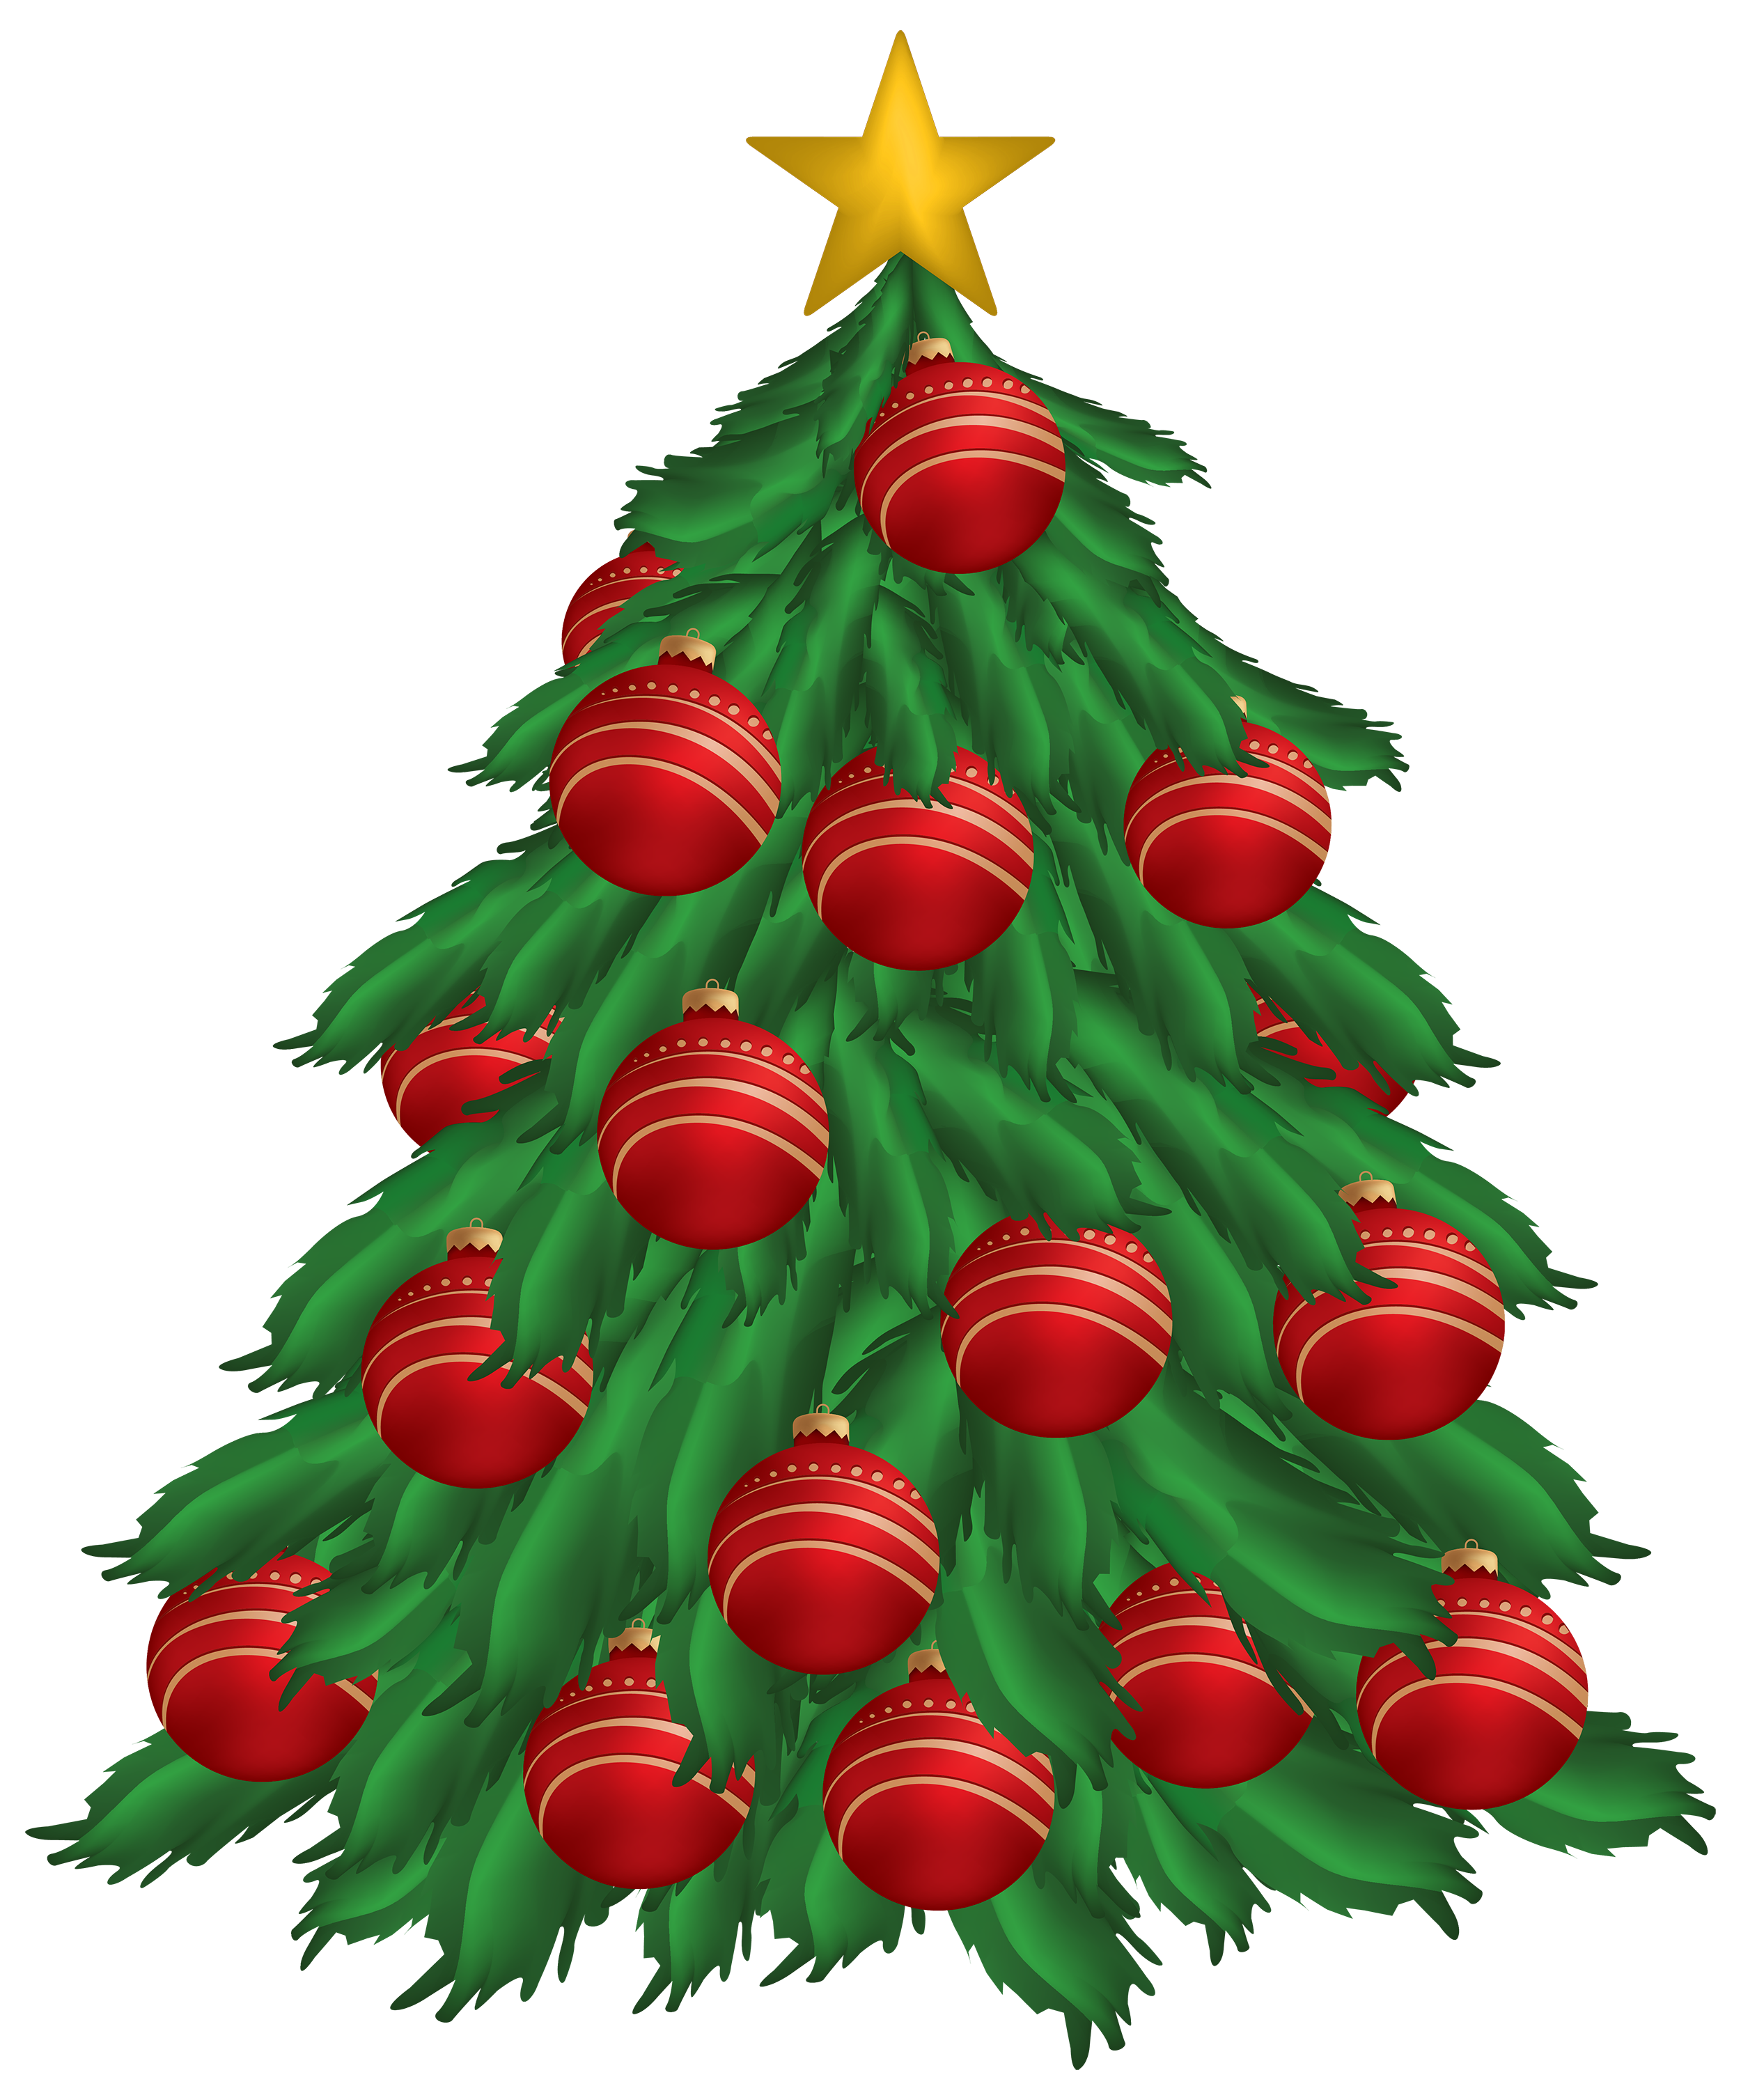 Christmas Tree Cliparts: Simple Christmas Tree Clipart At GetDrawings.com